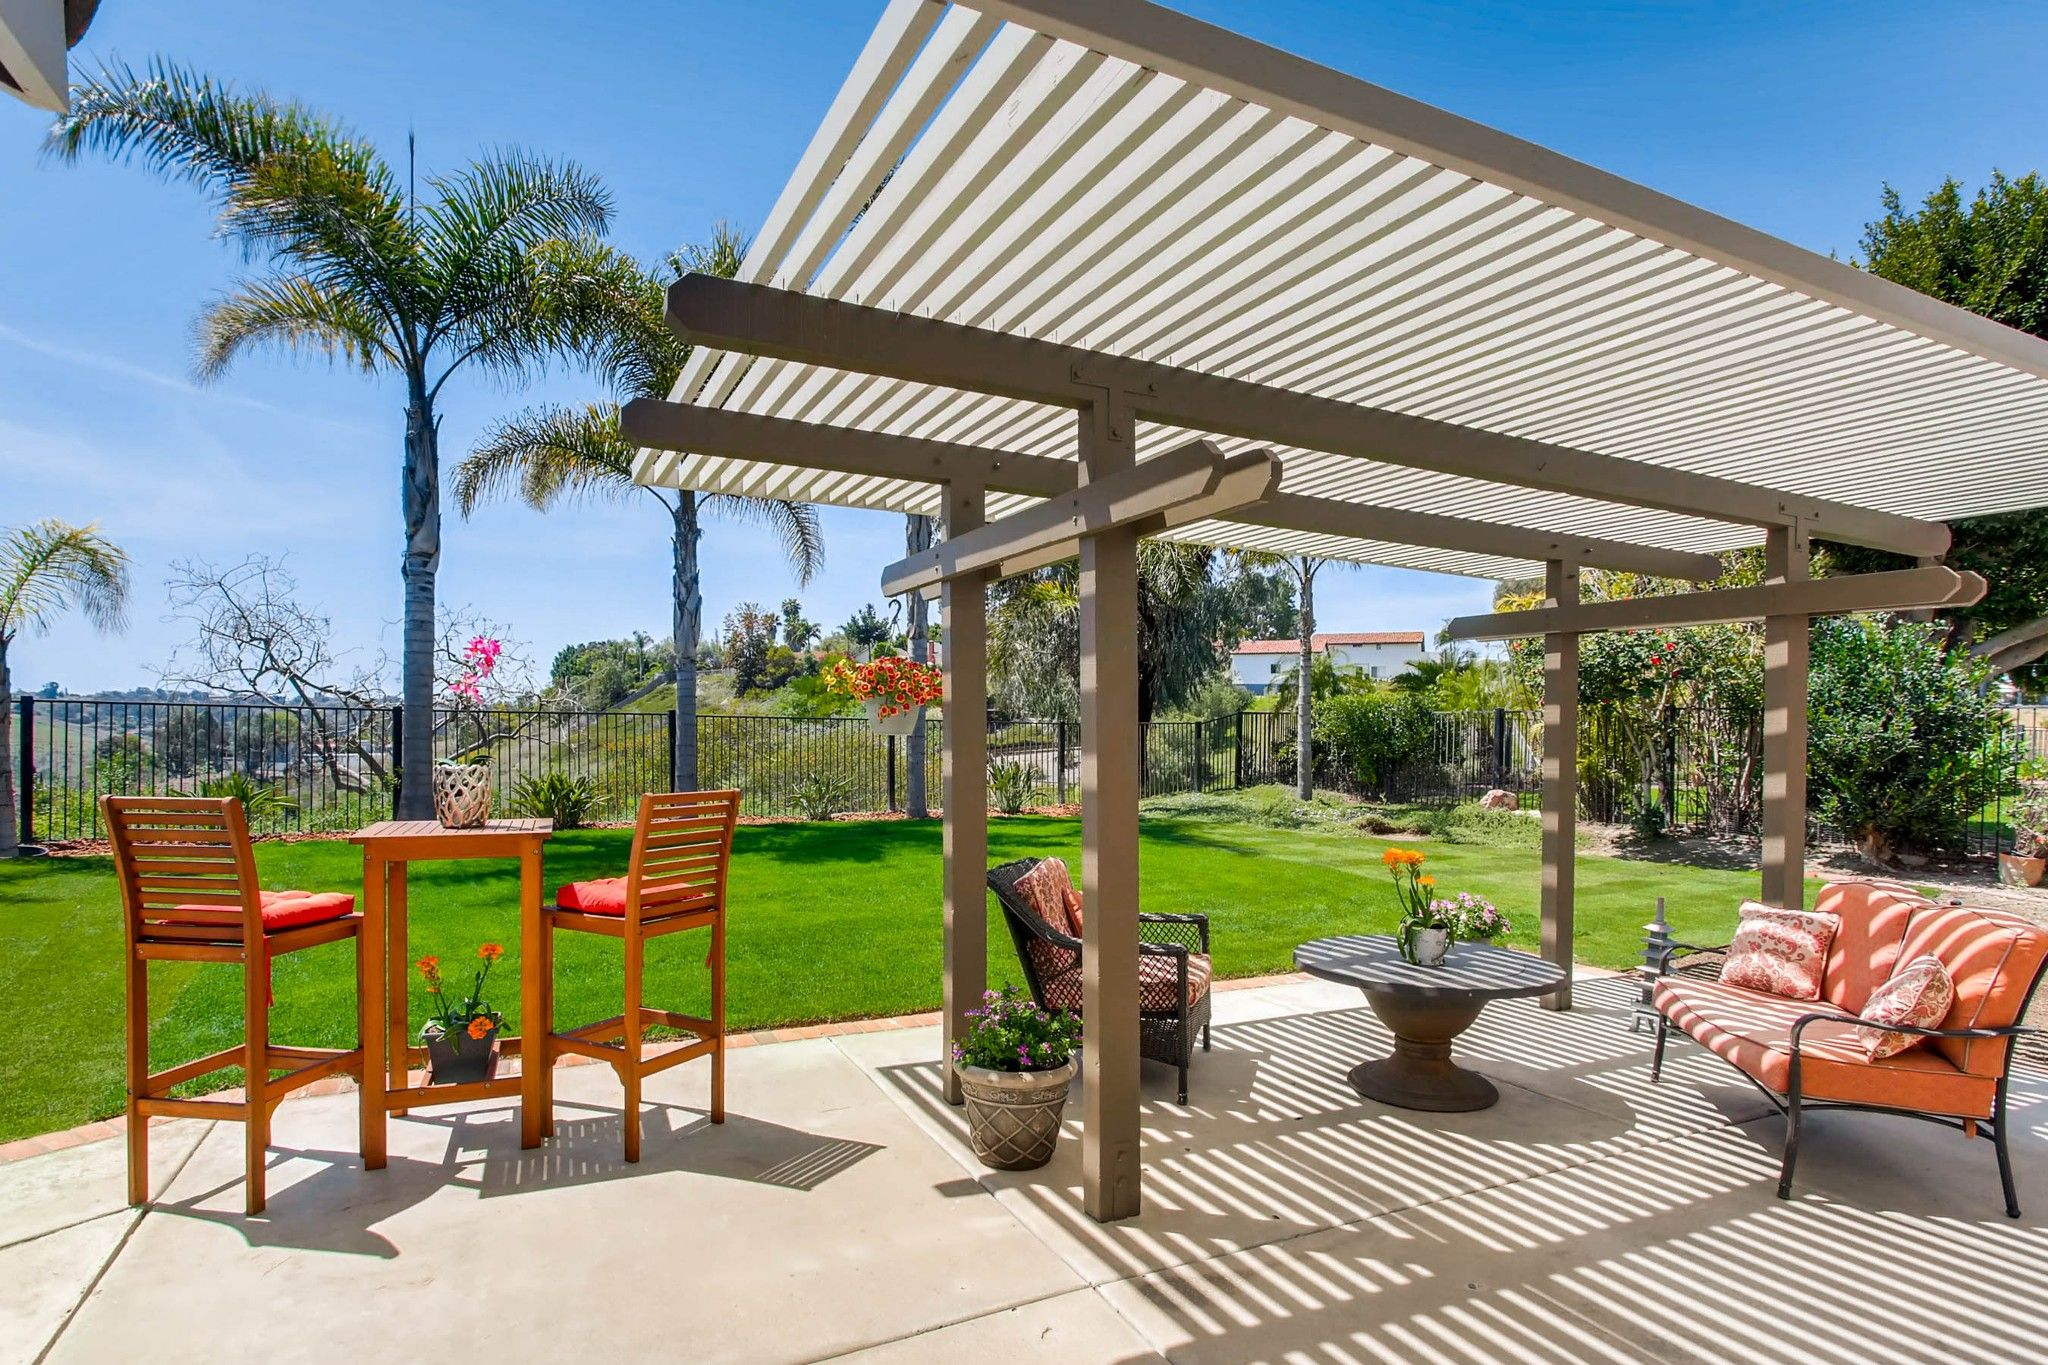 Photo 4: Photos: House for sale (San Diego)  : 5 bedrooms : 3341 Golfers Dr in Oceanside